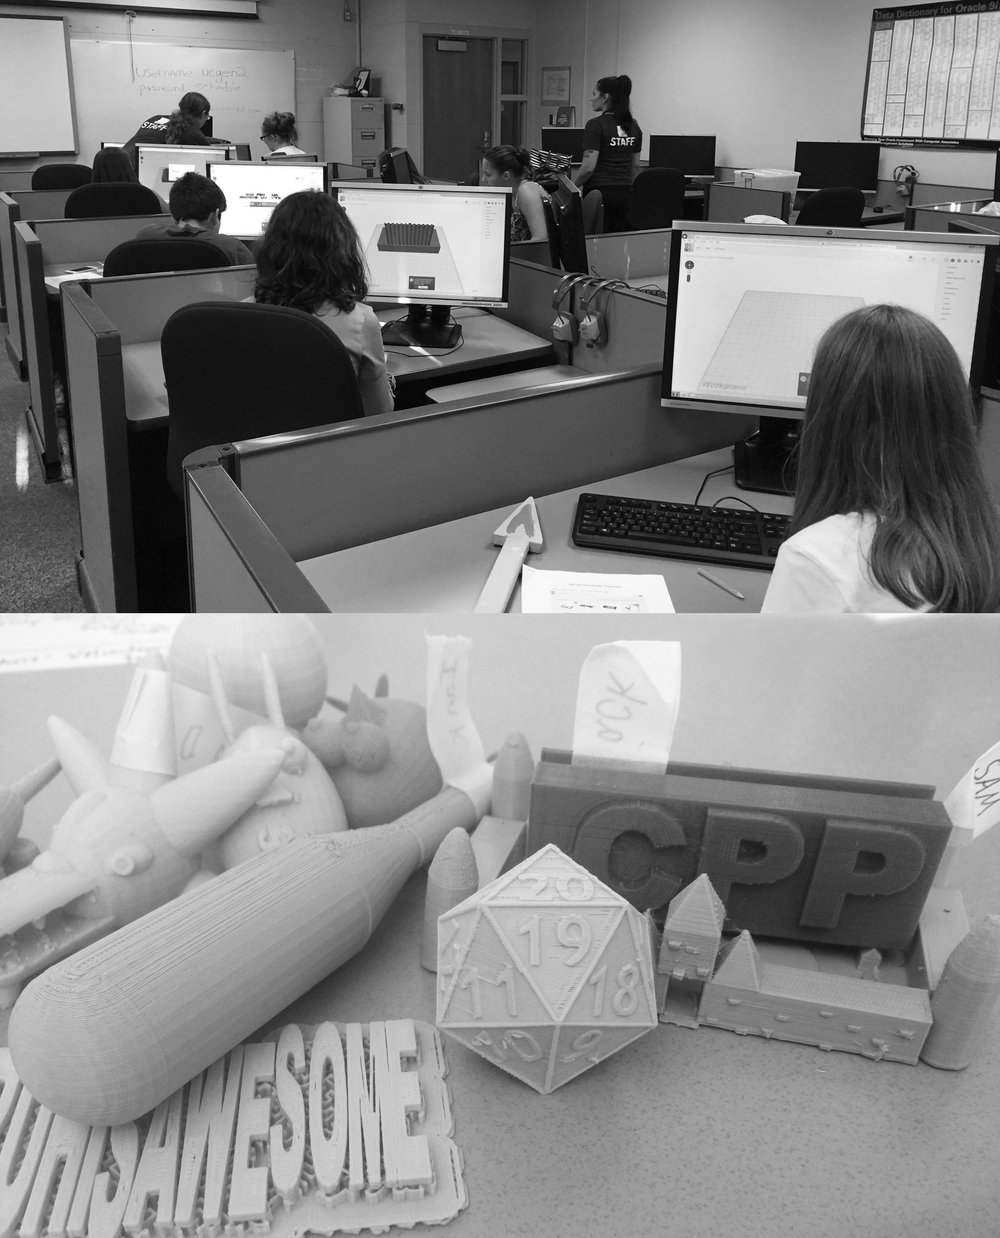 Creating and Leading a 3D printing workshop for middle school students through the Science Center of Iowa, bottom images displays student creations.